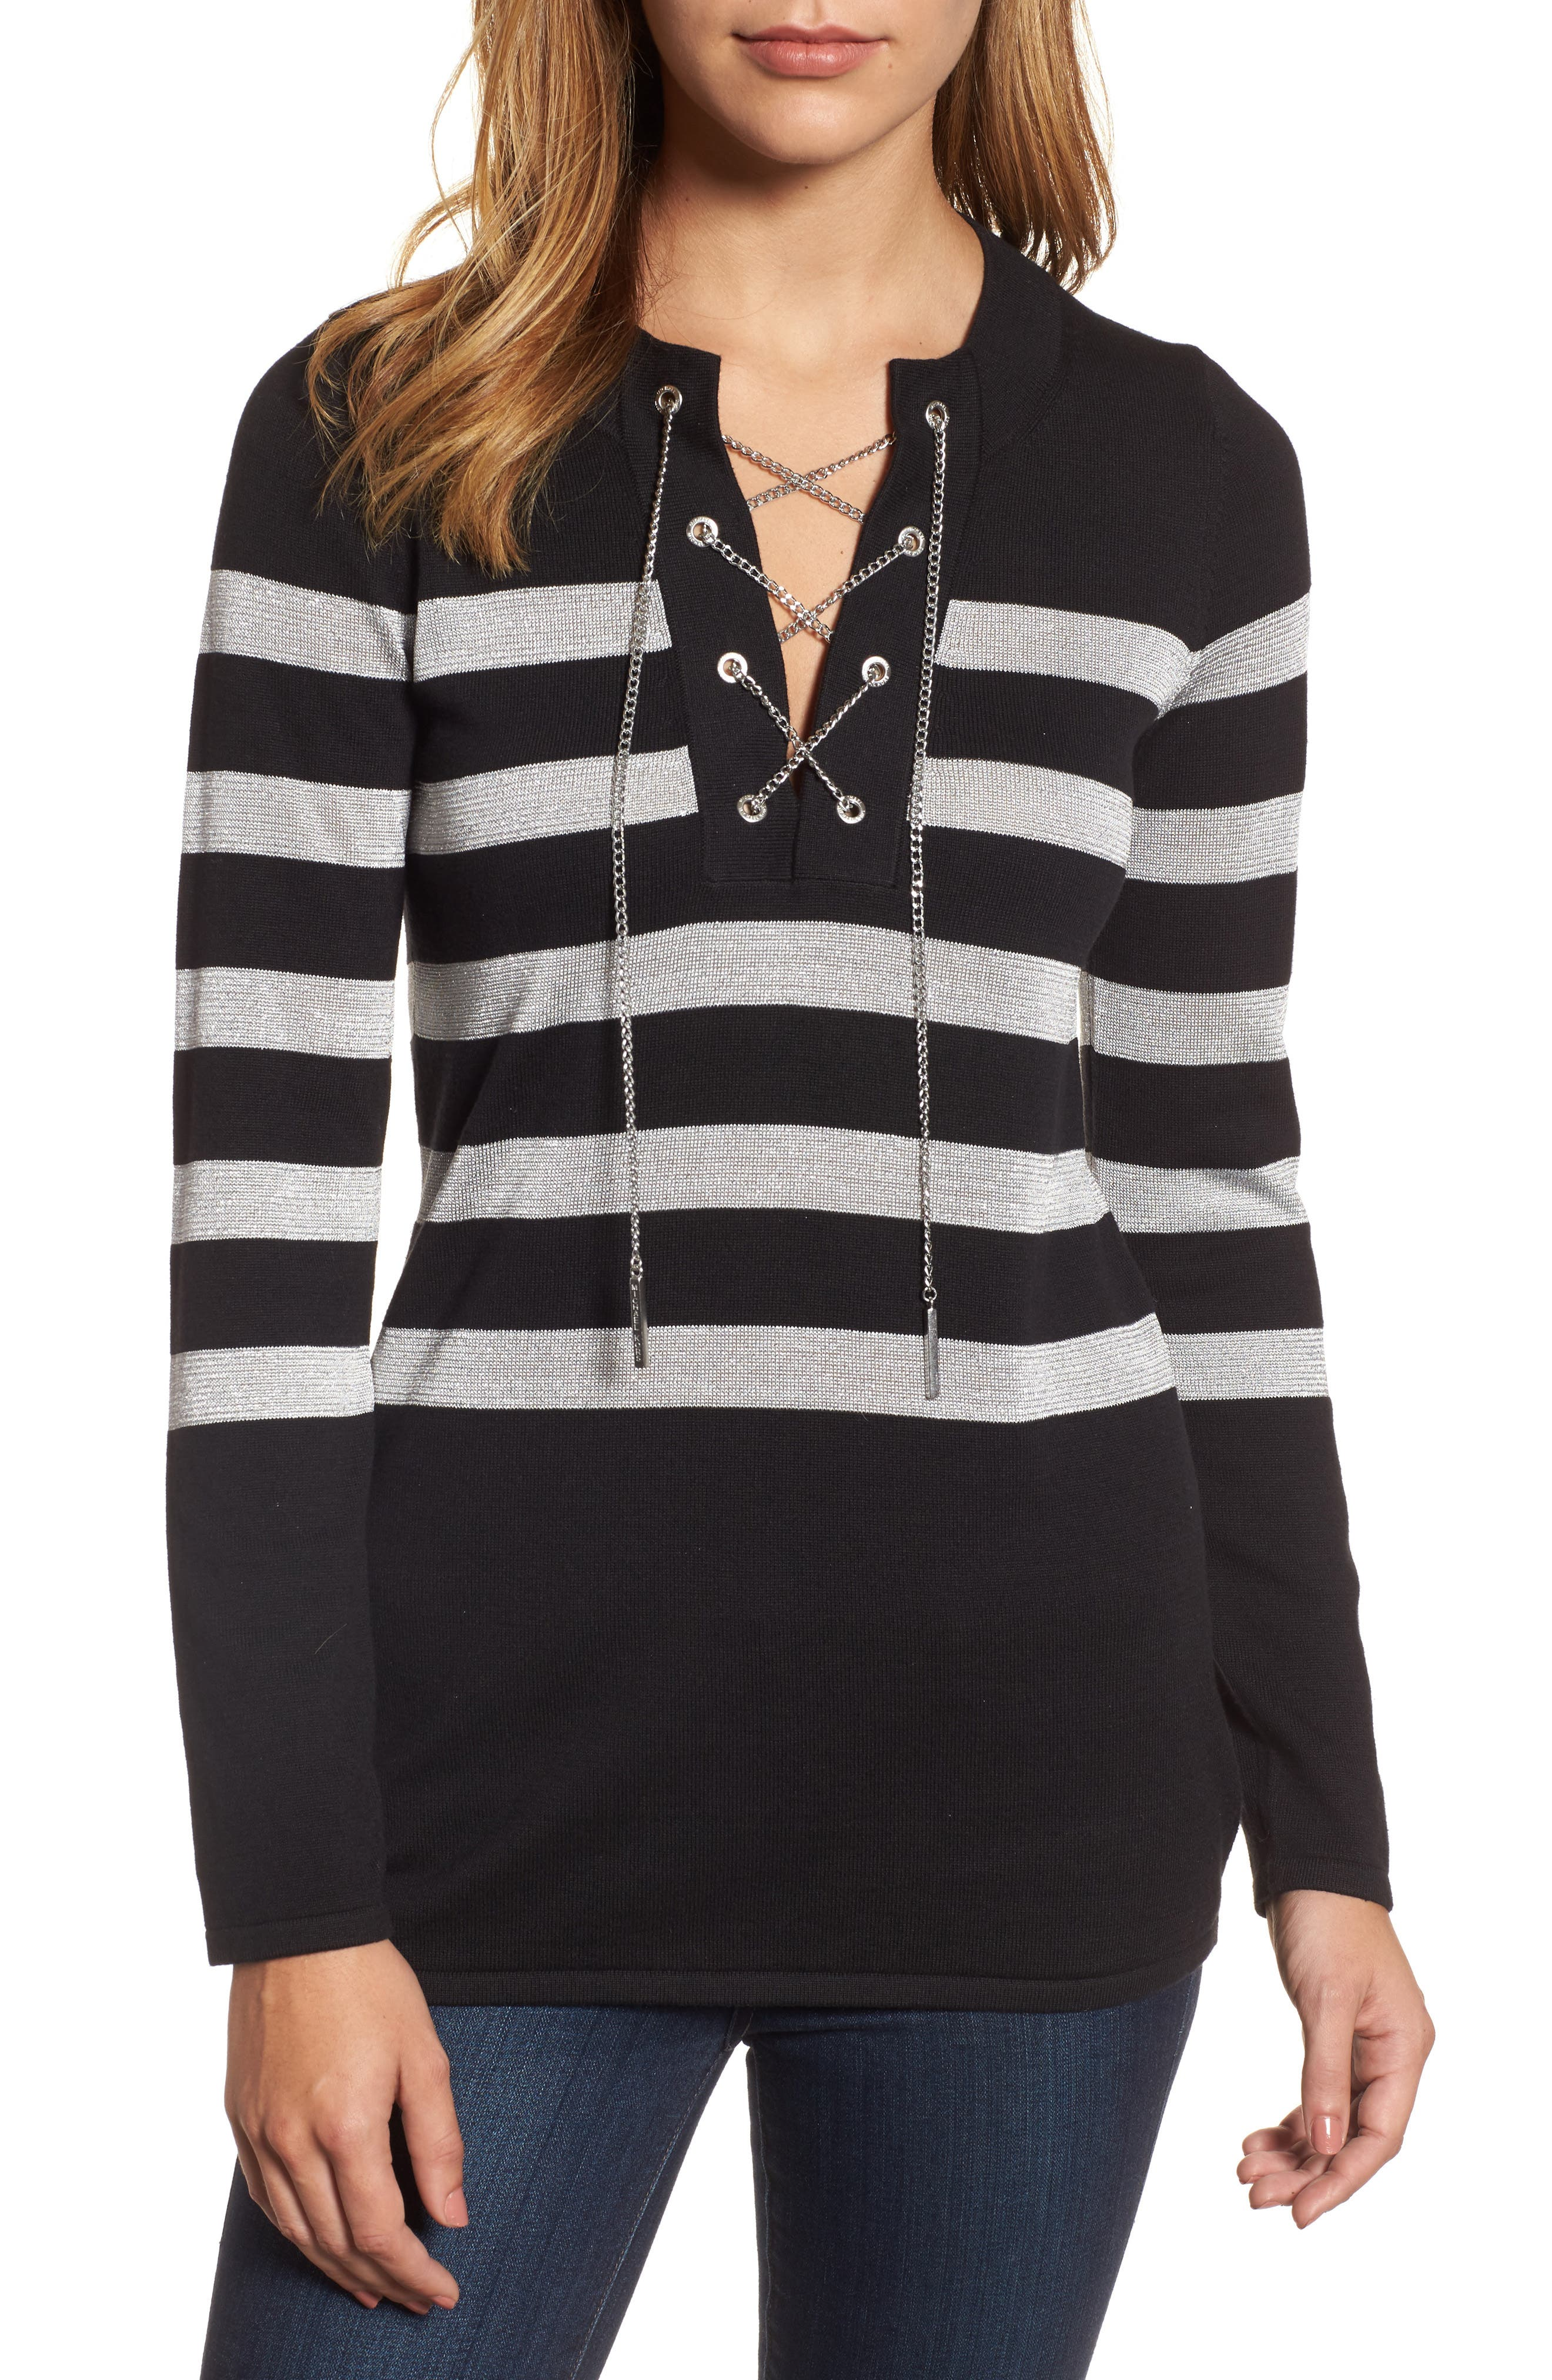 MICHAEL Michael Kors Laced-Up Chain Tunic